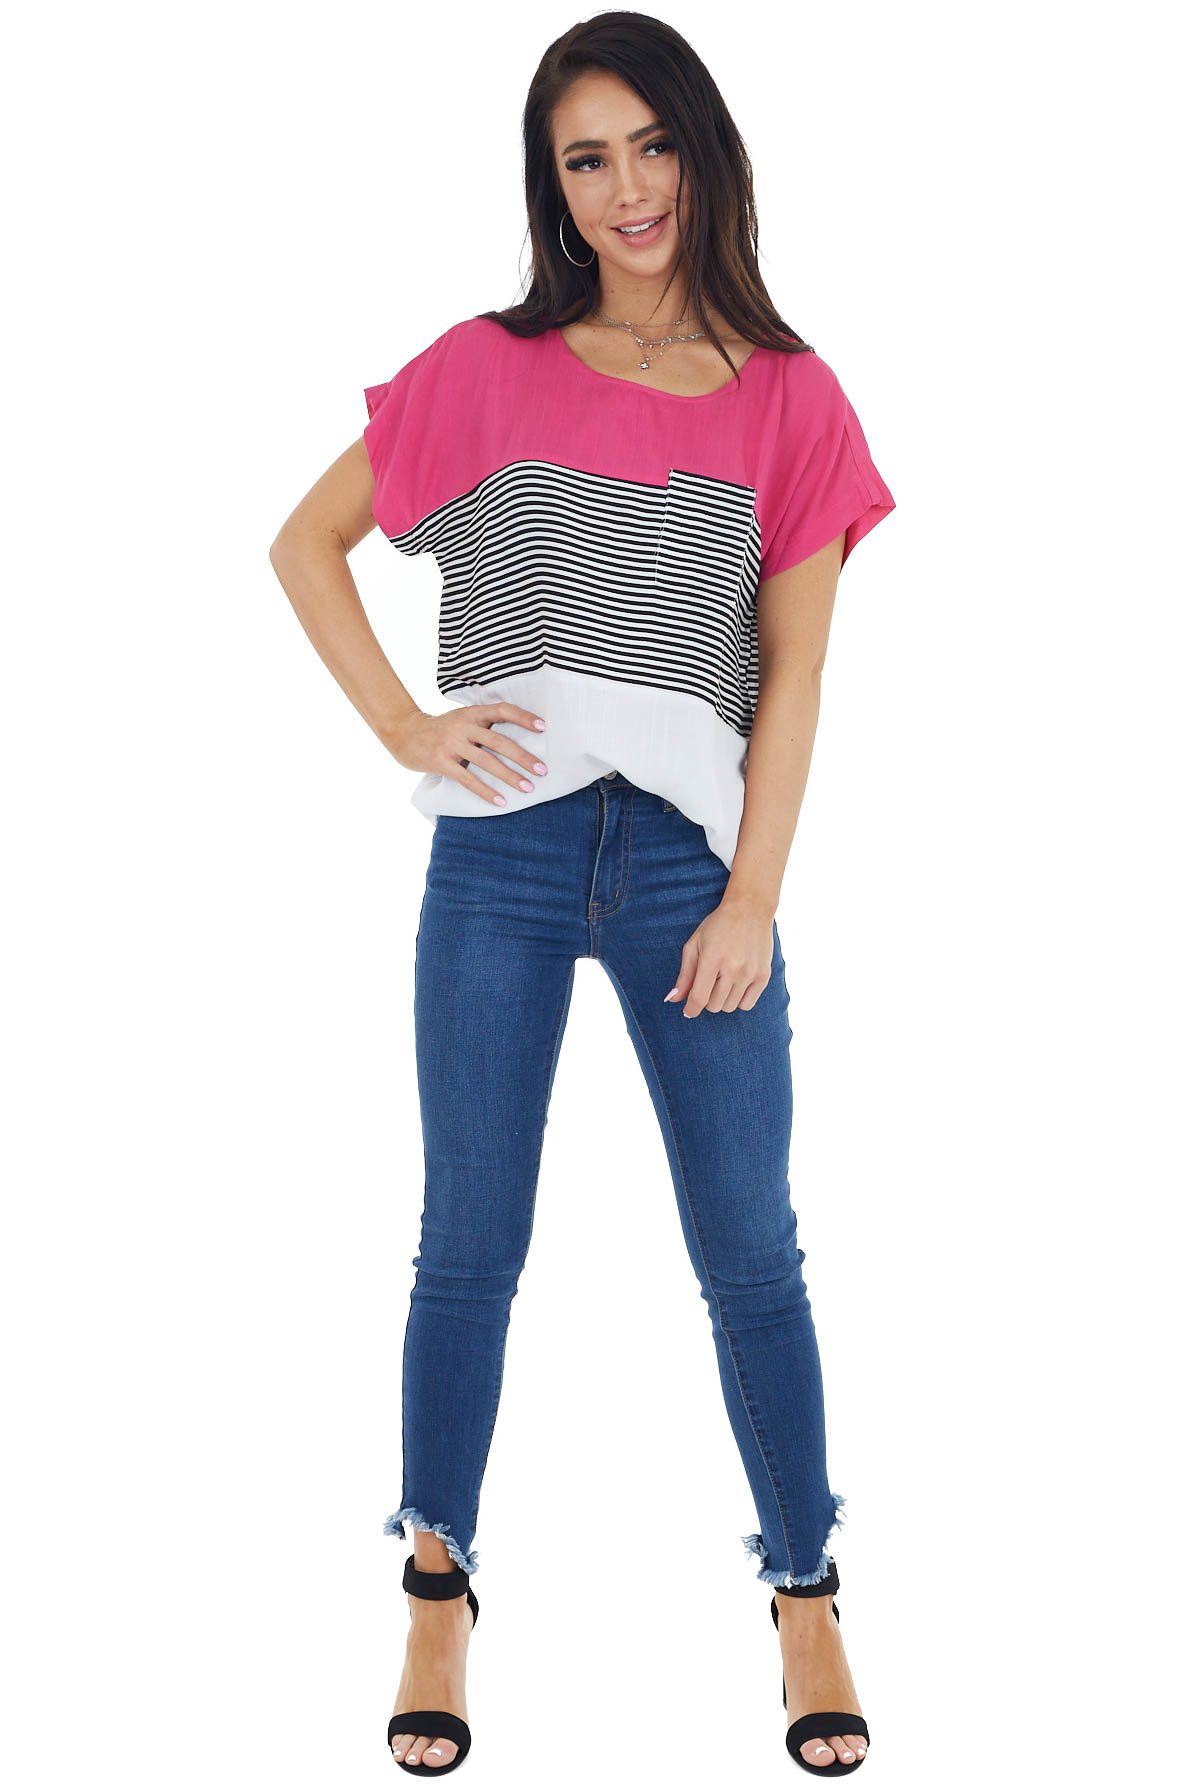 Fuchsia and White Colorblock Short Sleeve Top with Stripes